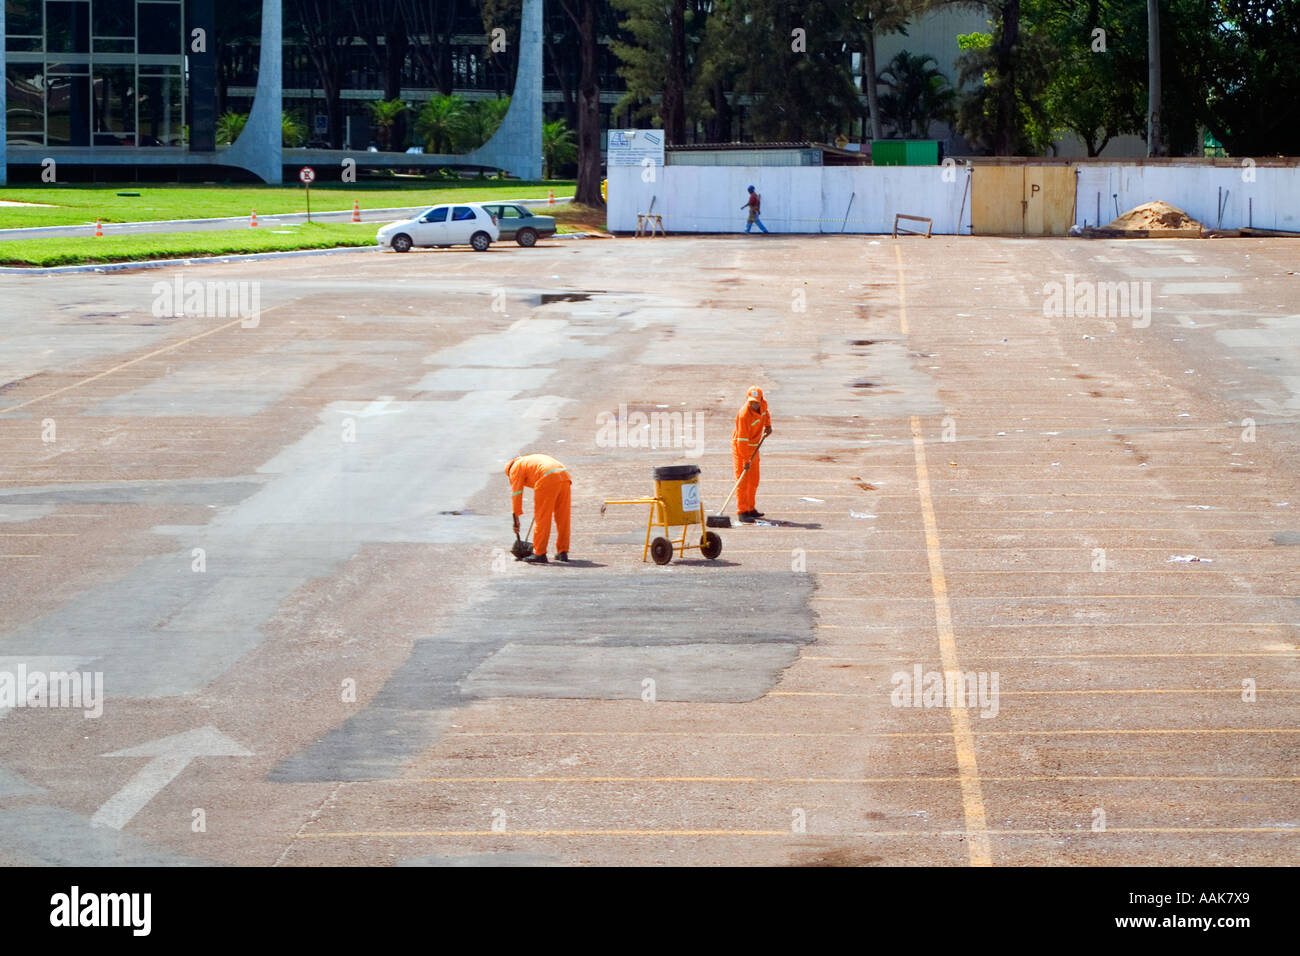 Workers Cleaning Streets Brasilia Brazil Stock Photo